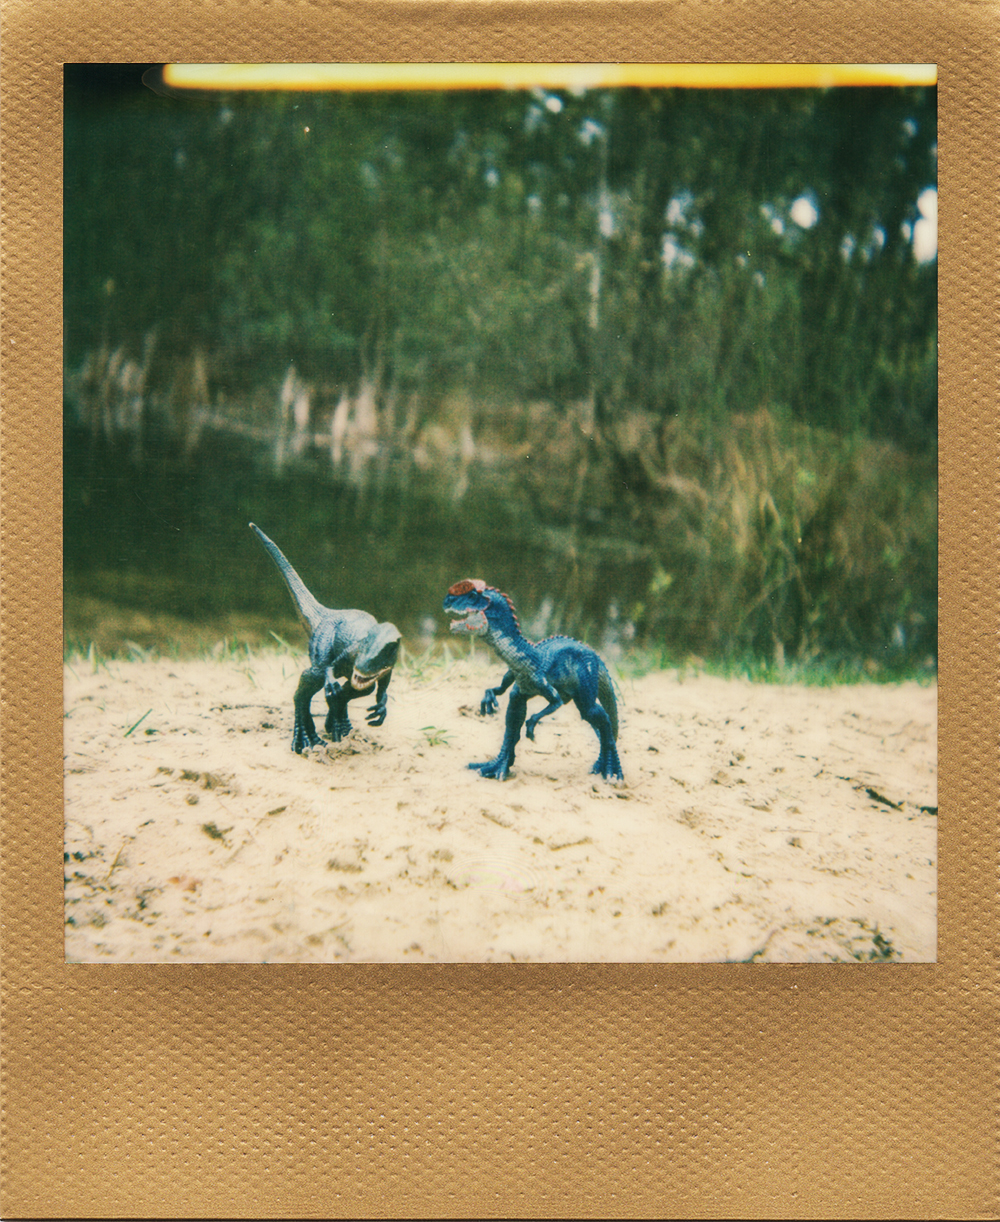 Walking with Dinosaurs | Polaroid 660AF | Impossible Color with Gold Frame | Karin Claus